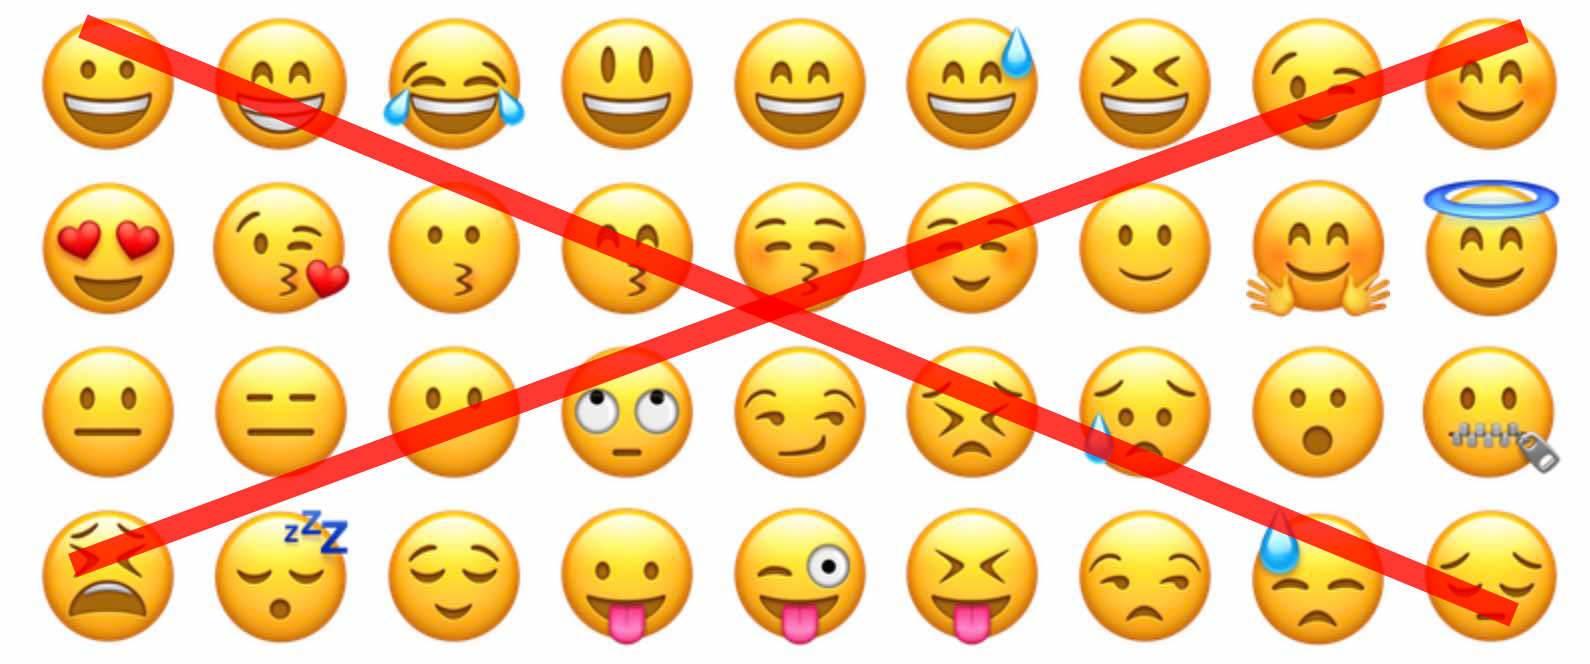 All of the different emojis with a big red cross